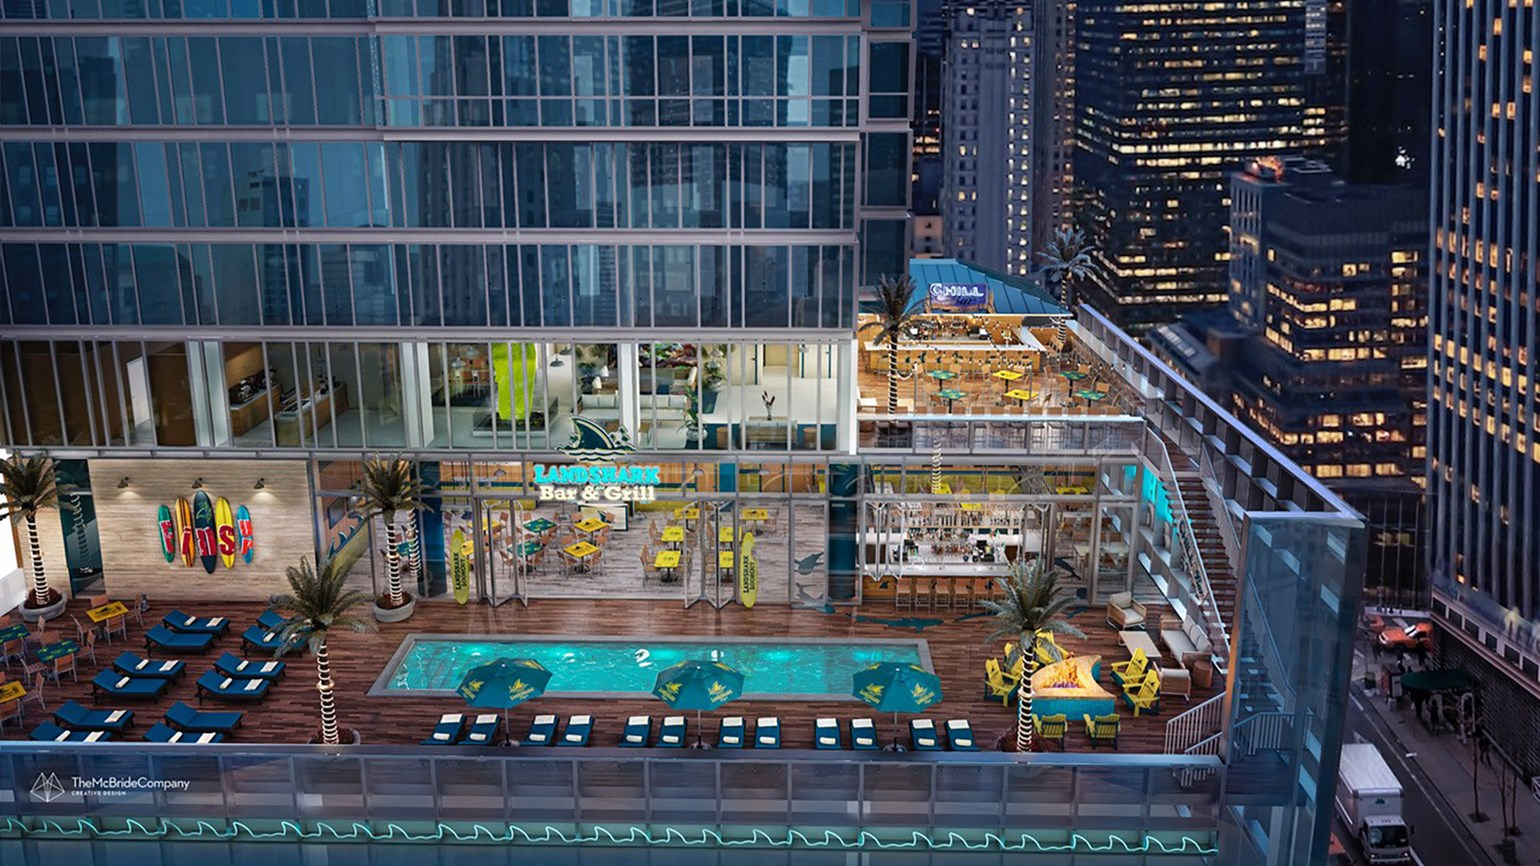 Margaritaville resort being built in Manhattan